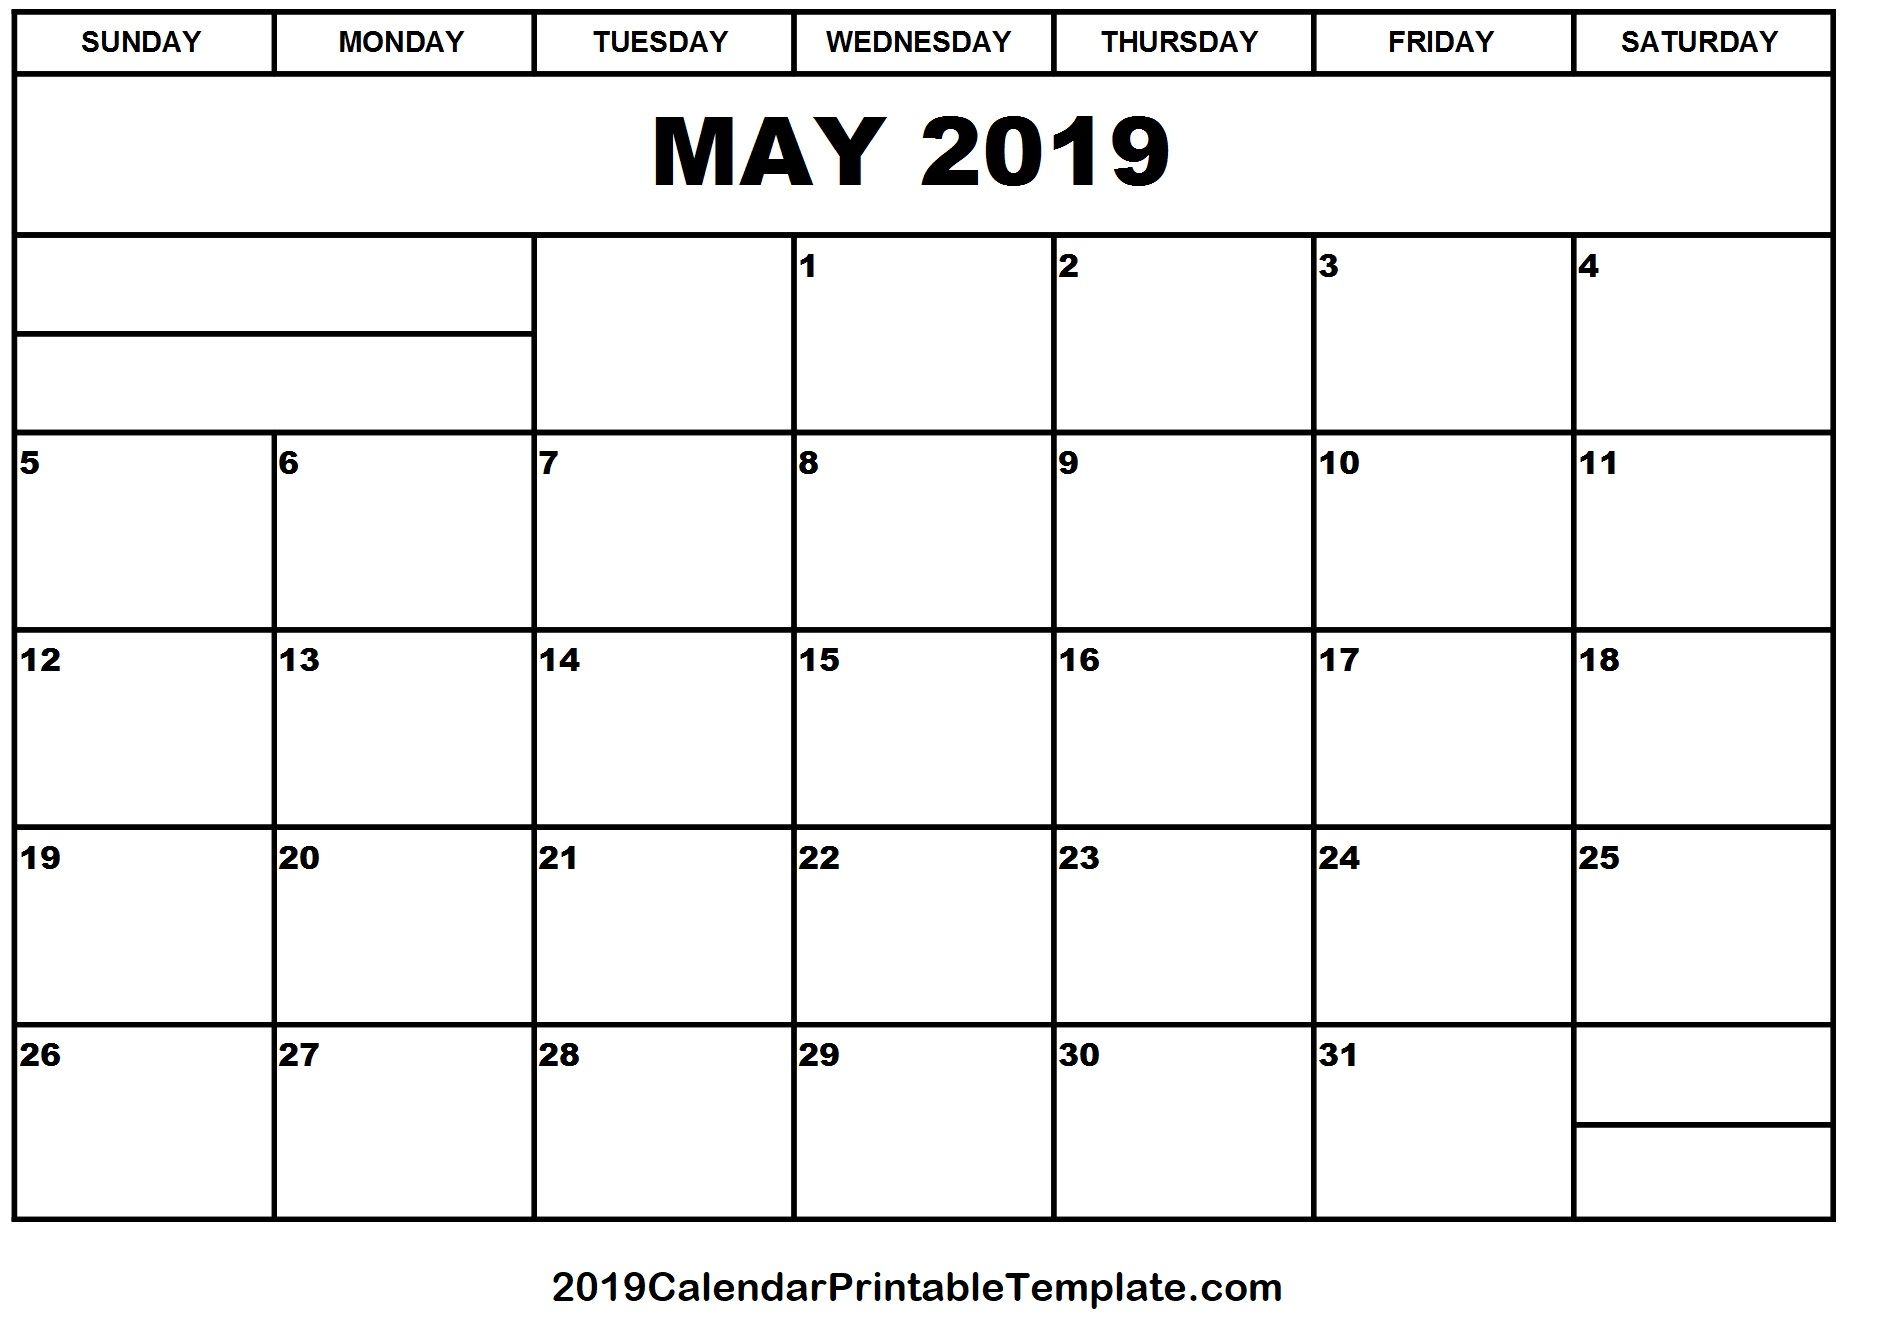 May 2019 Calendar Printable Template With Holidays Pdf Word Excel